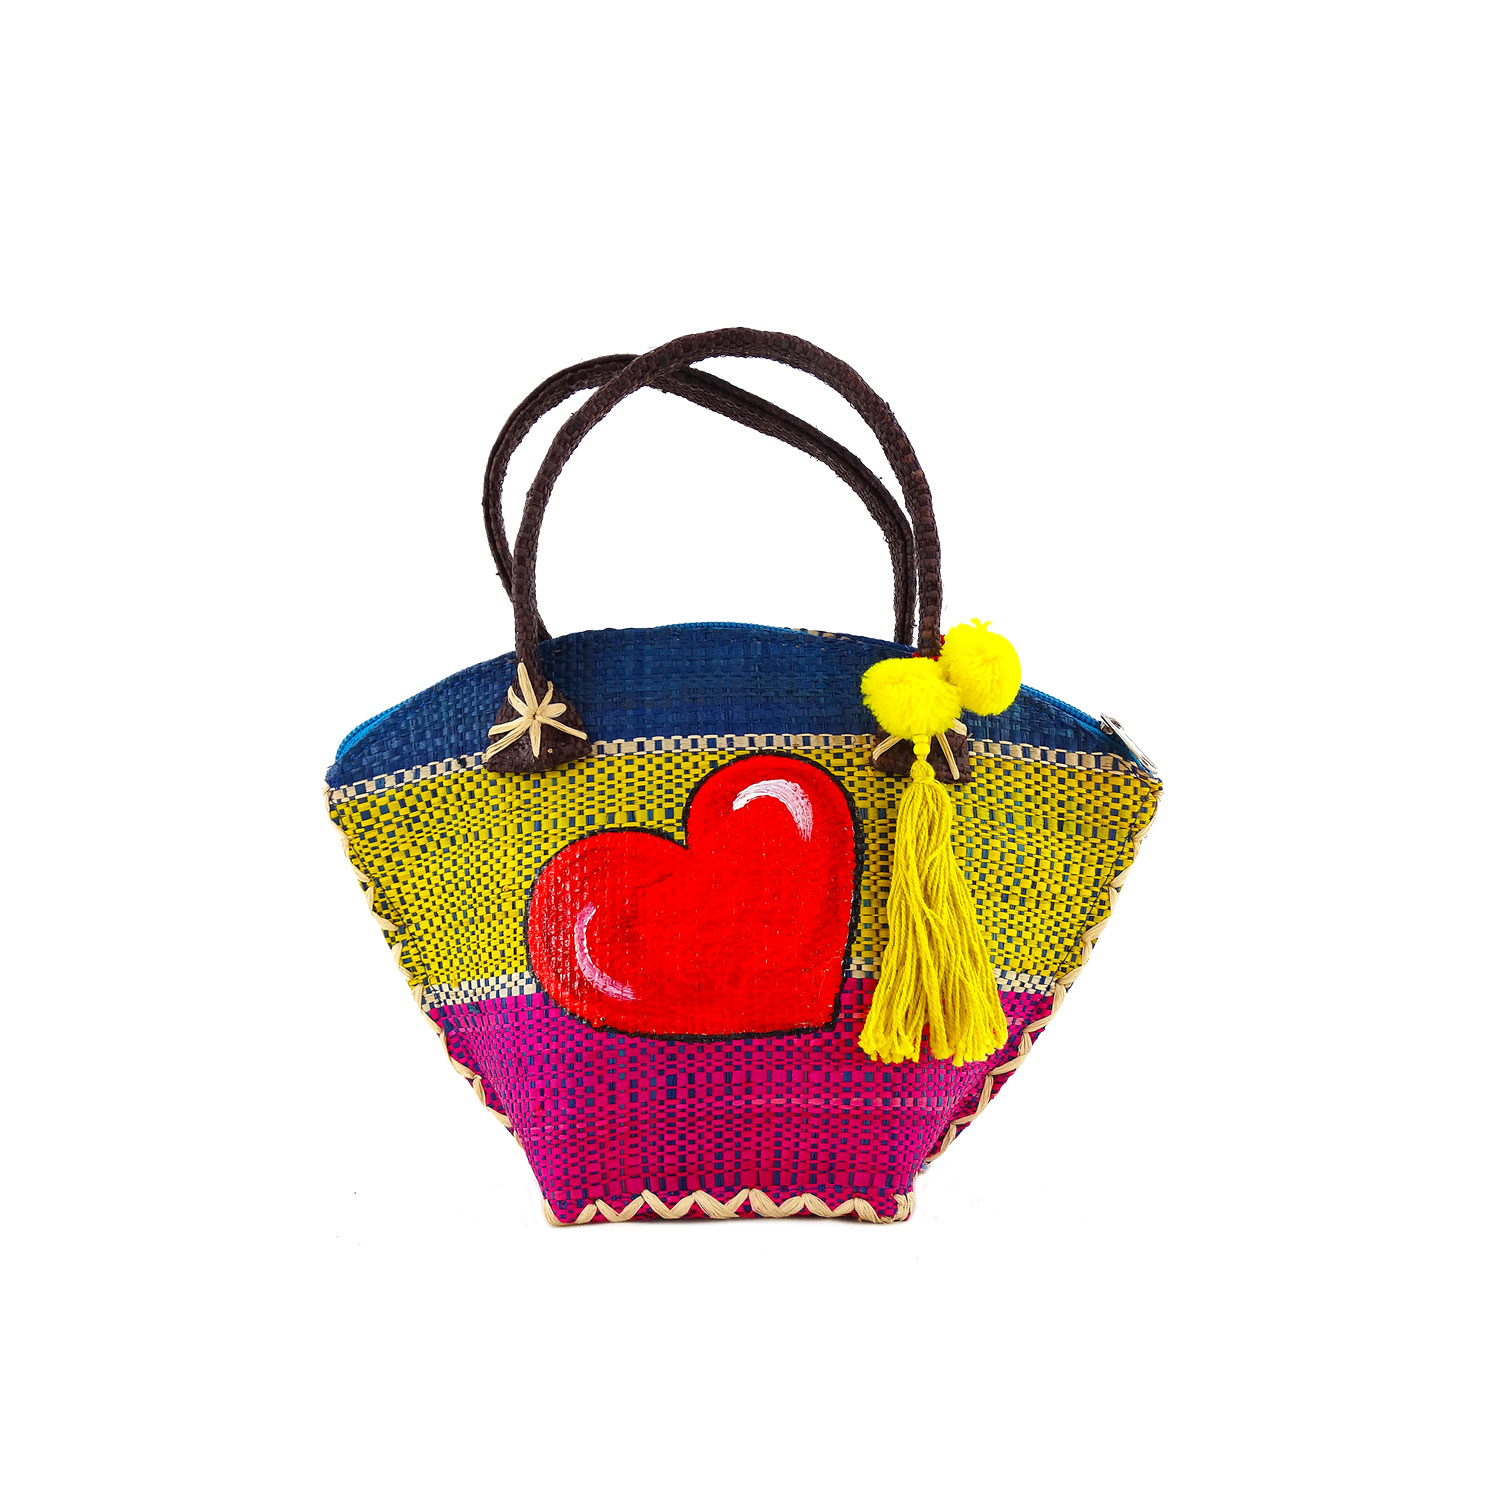 Hand-painted straw handbag - Red heart